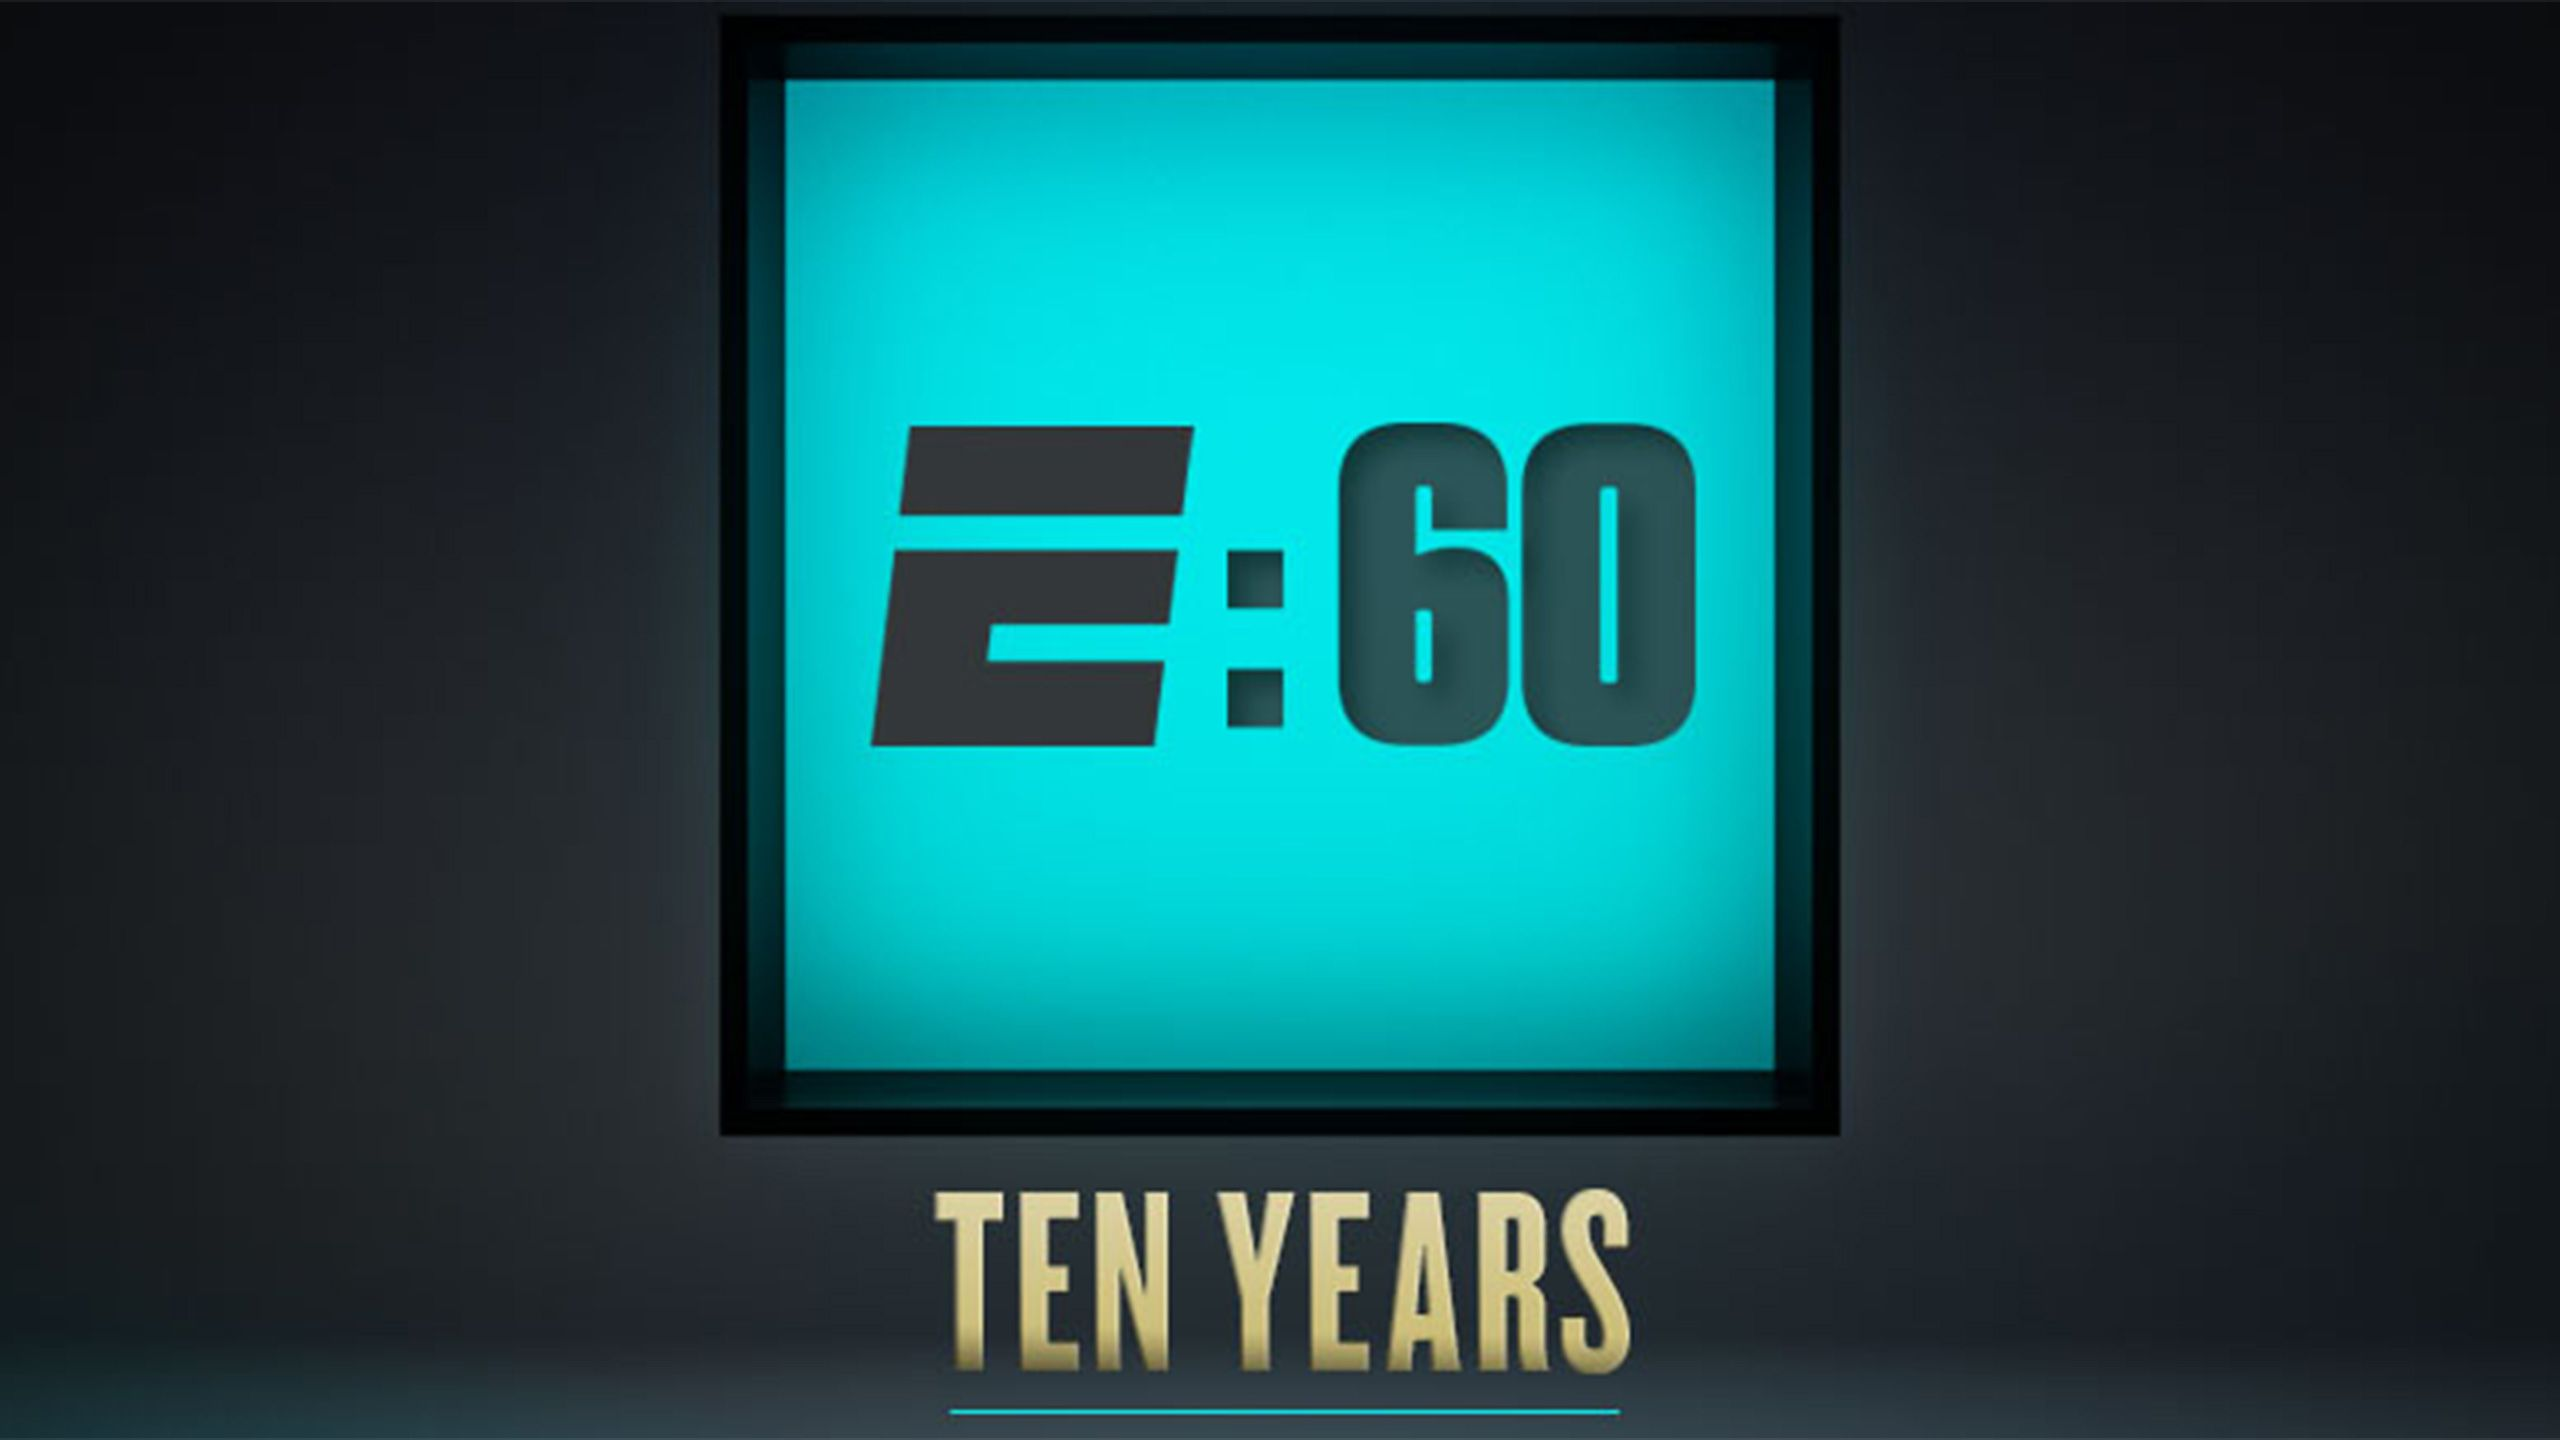 E:60 - 10 Years Presented by Liberty Mutual